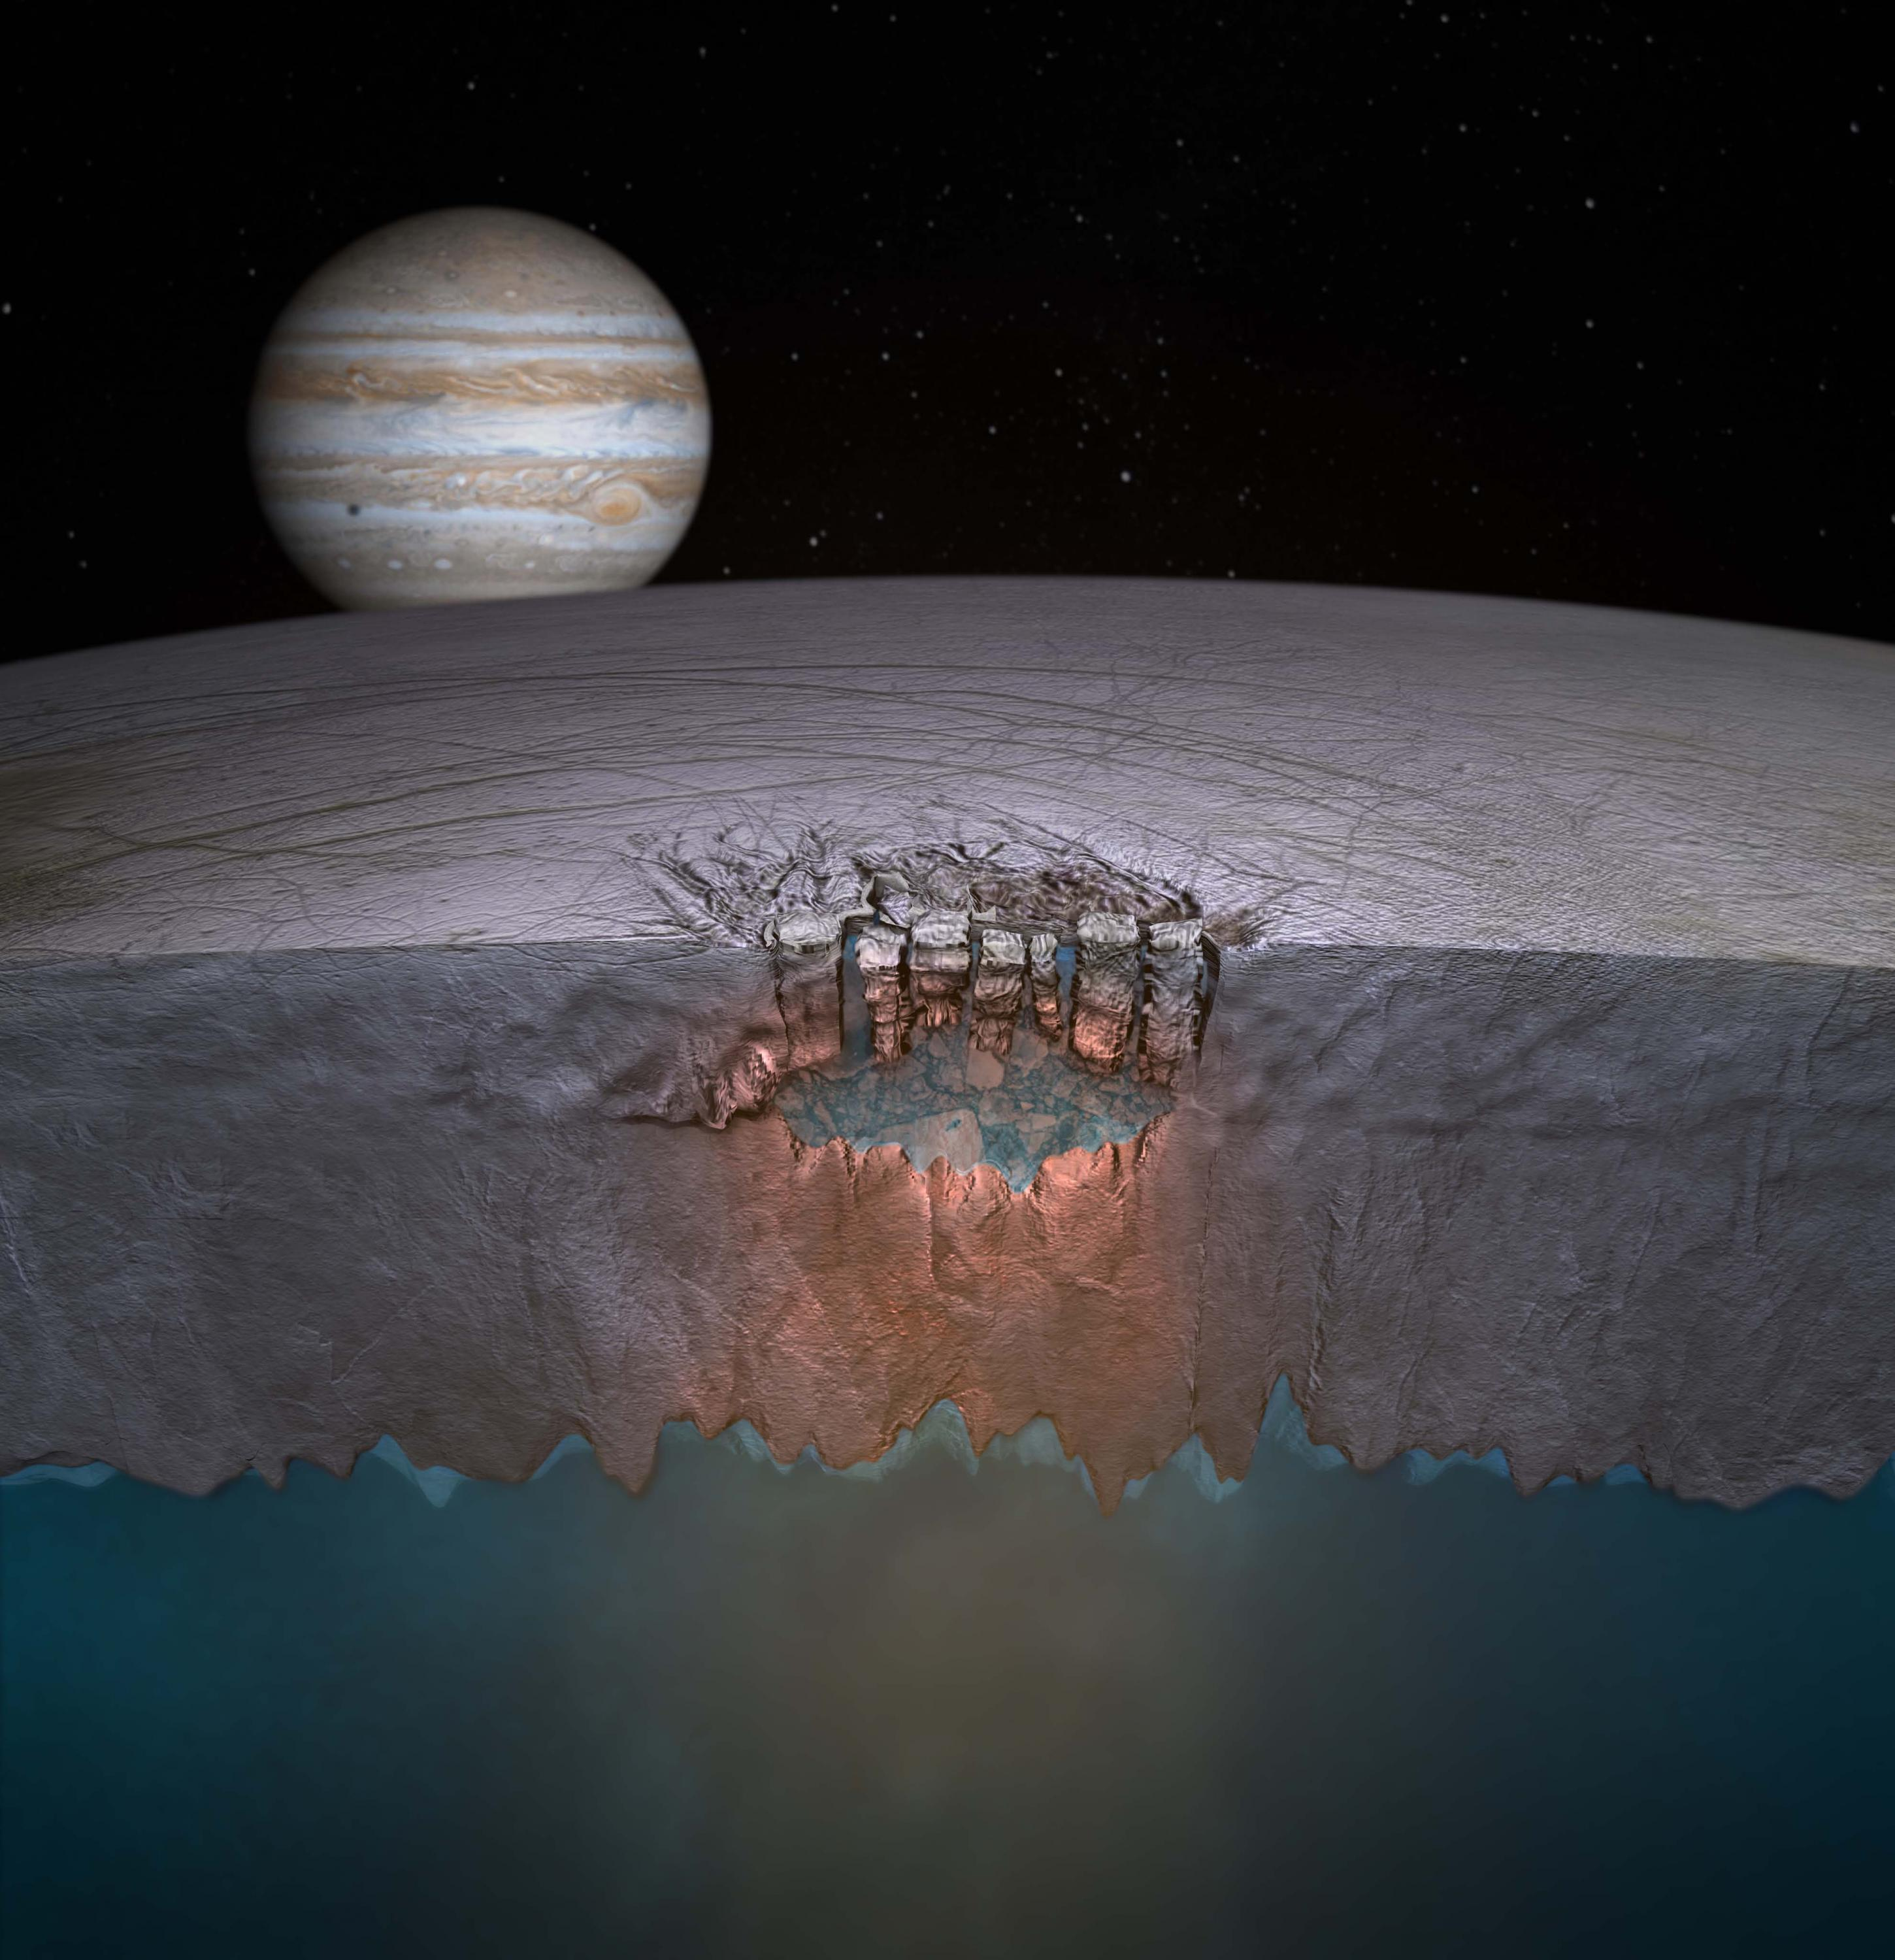 Europa cross-section ice crust